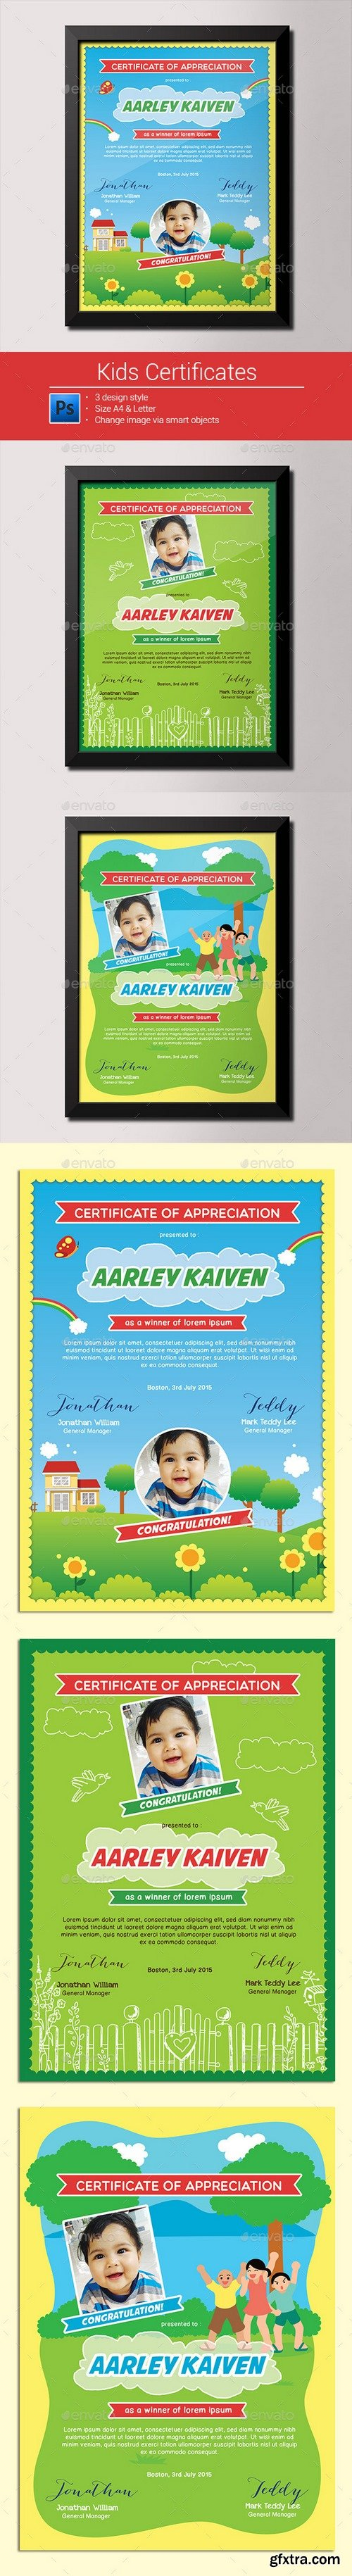 Graphicriver - Kids Certificates 9953804